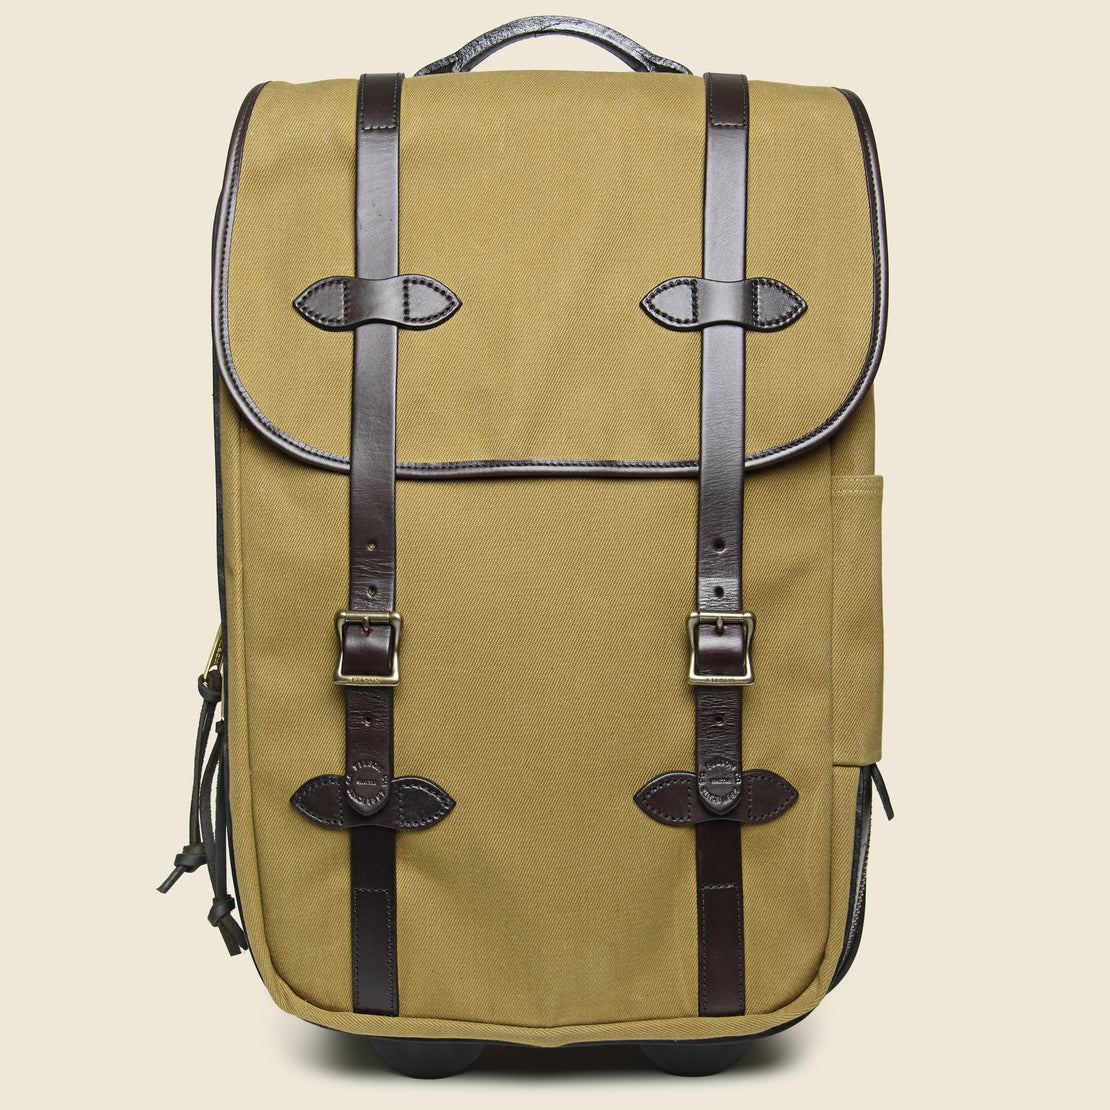 Filson Rolling Carry-On Bag - Tan